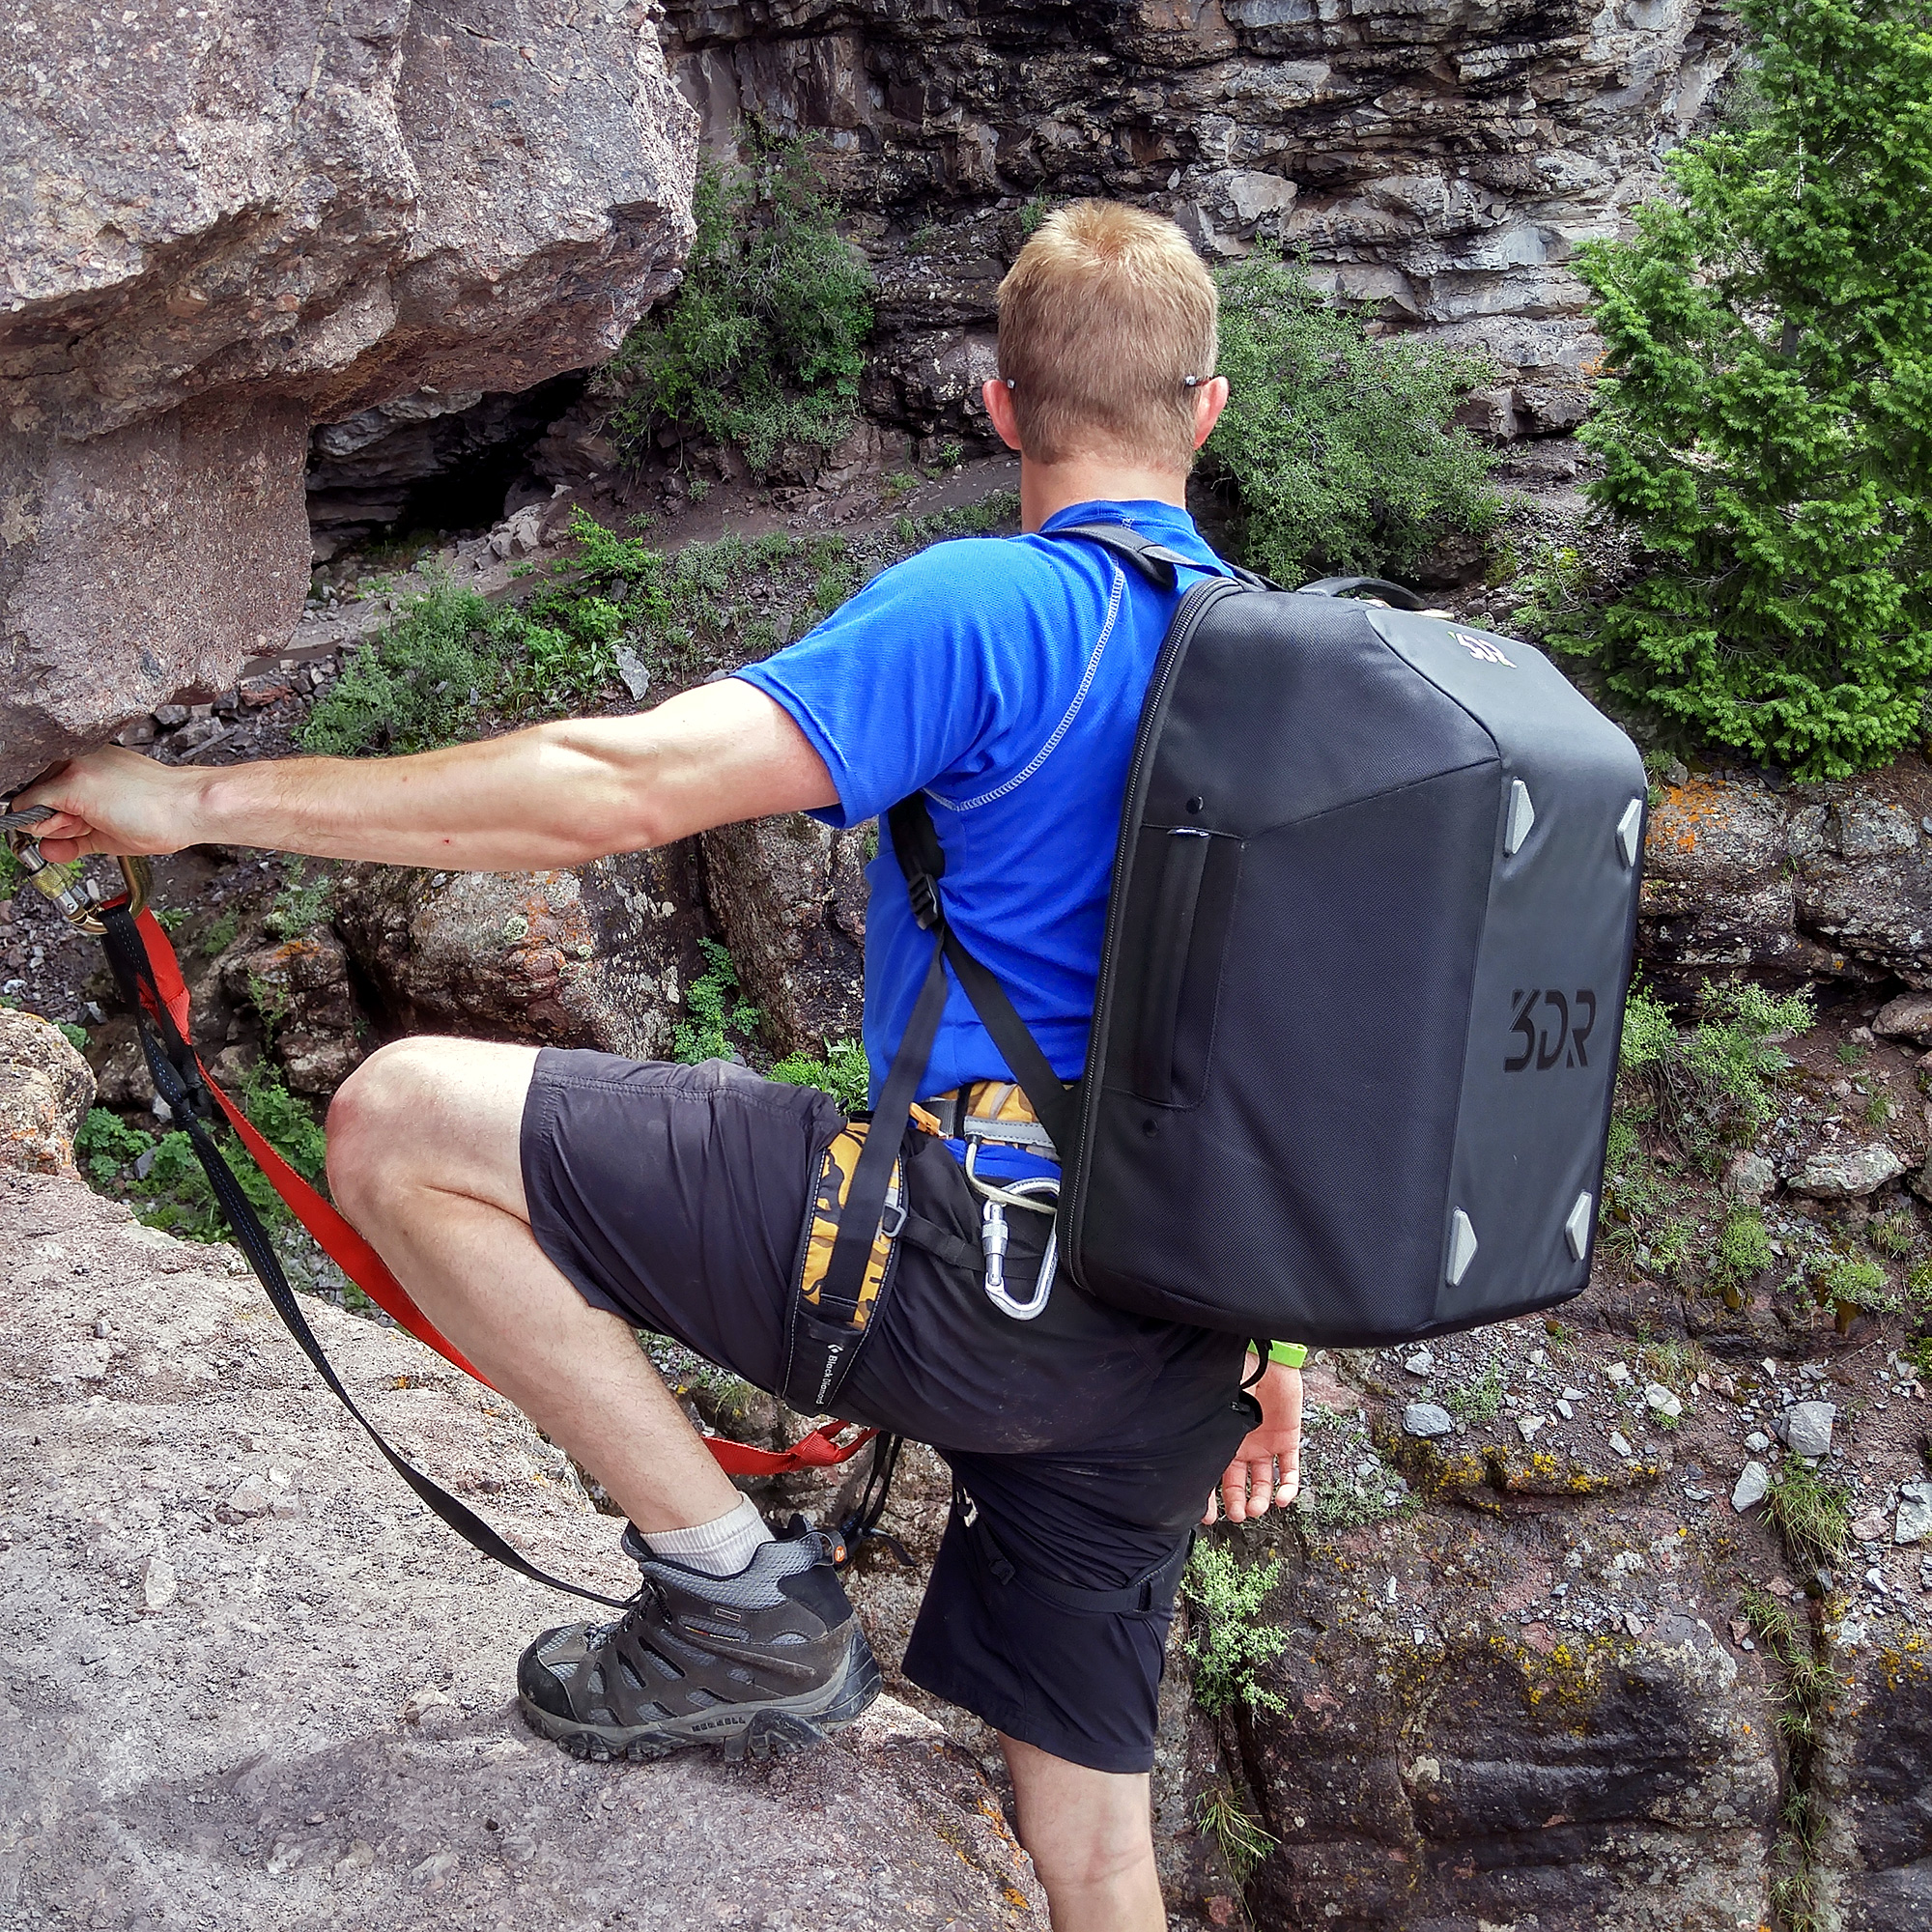 solo-backpack-climber